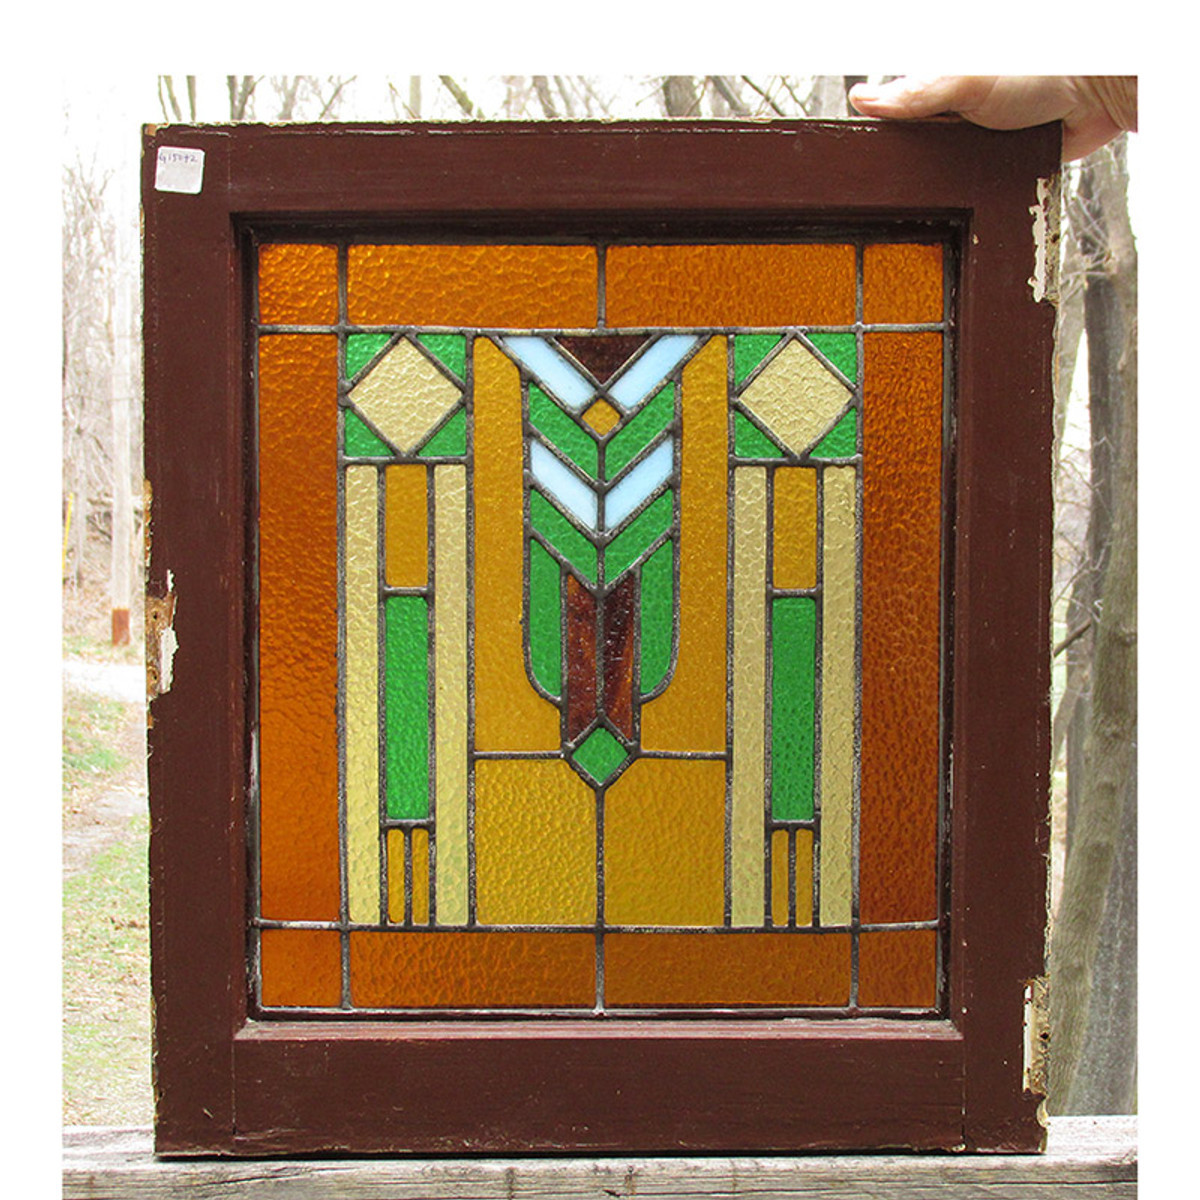 G15072 - Antique Arts & Crafts Stained Glass Window